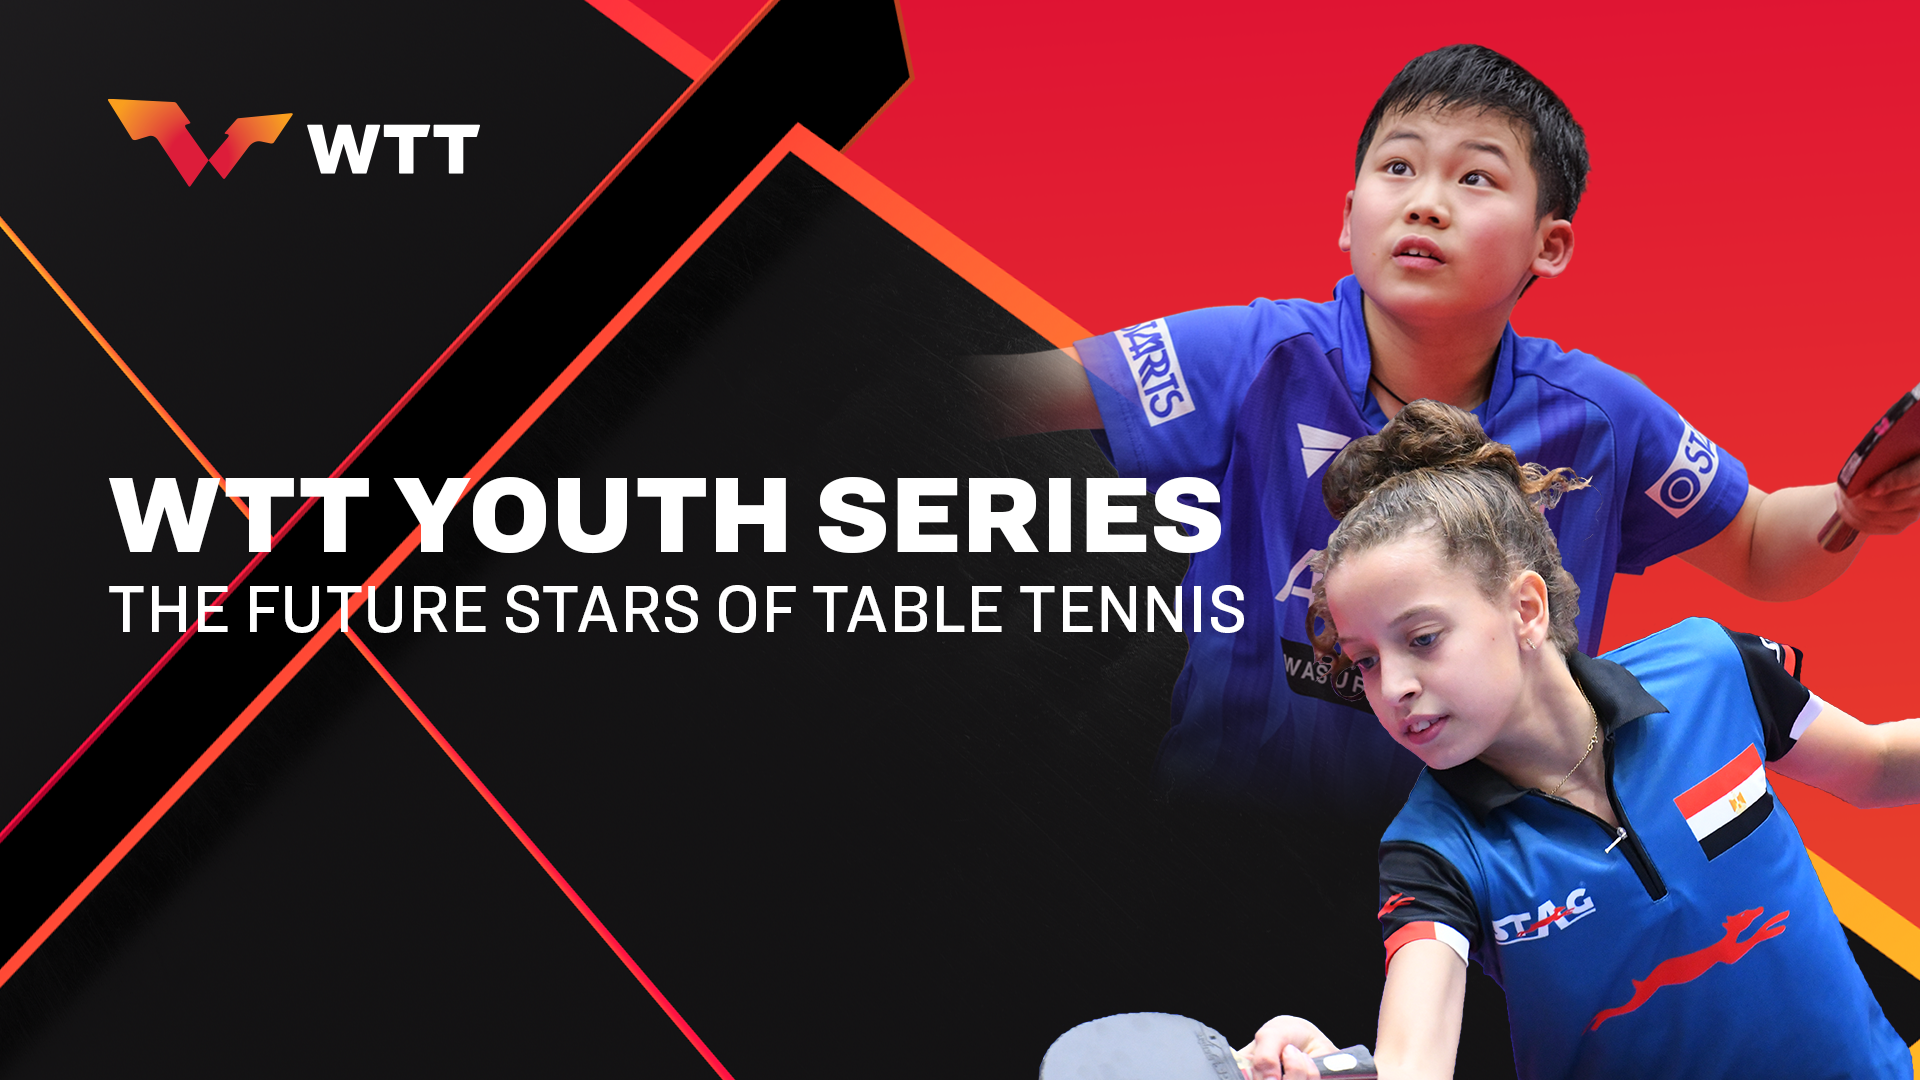 WTT Youth Series